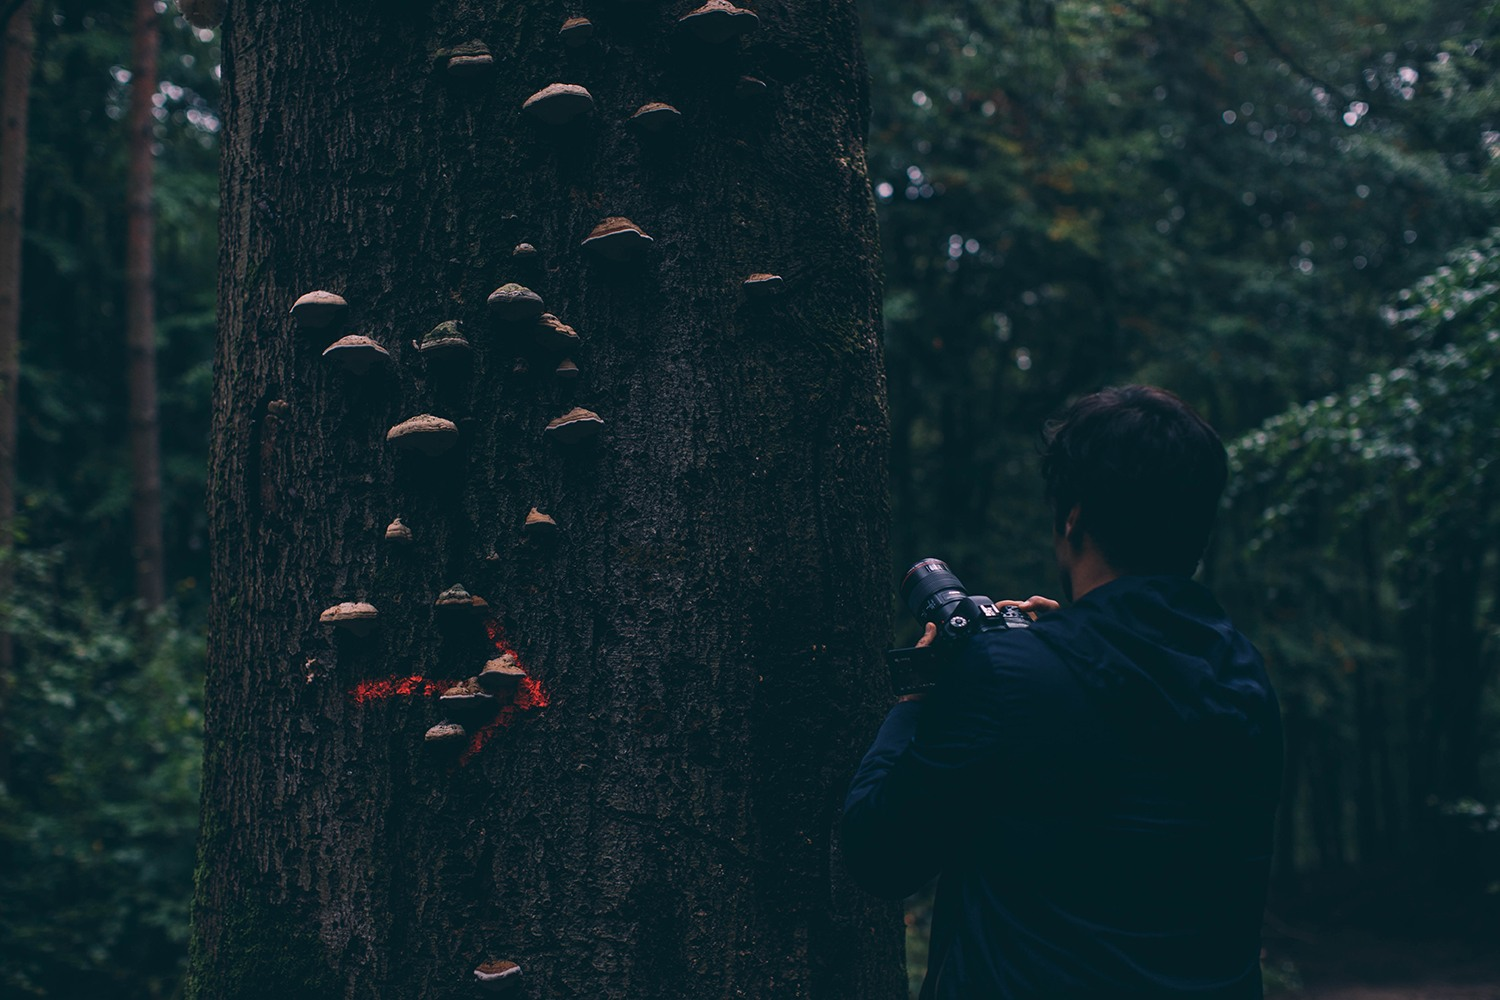 photographing in the woods